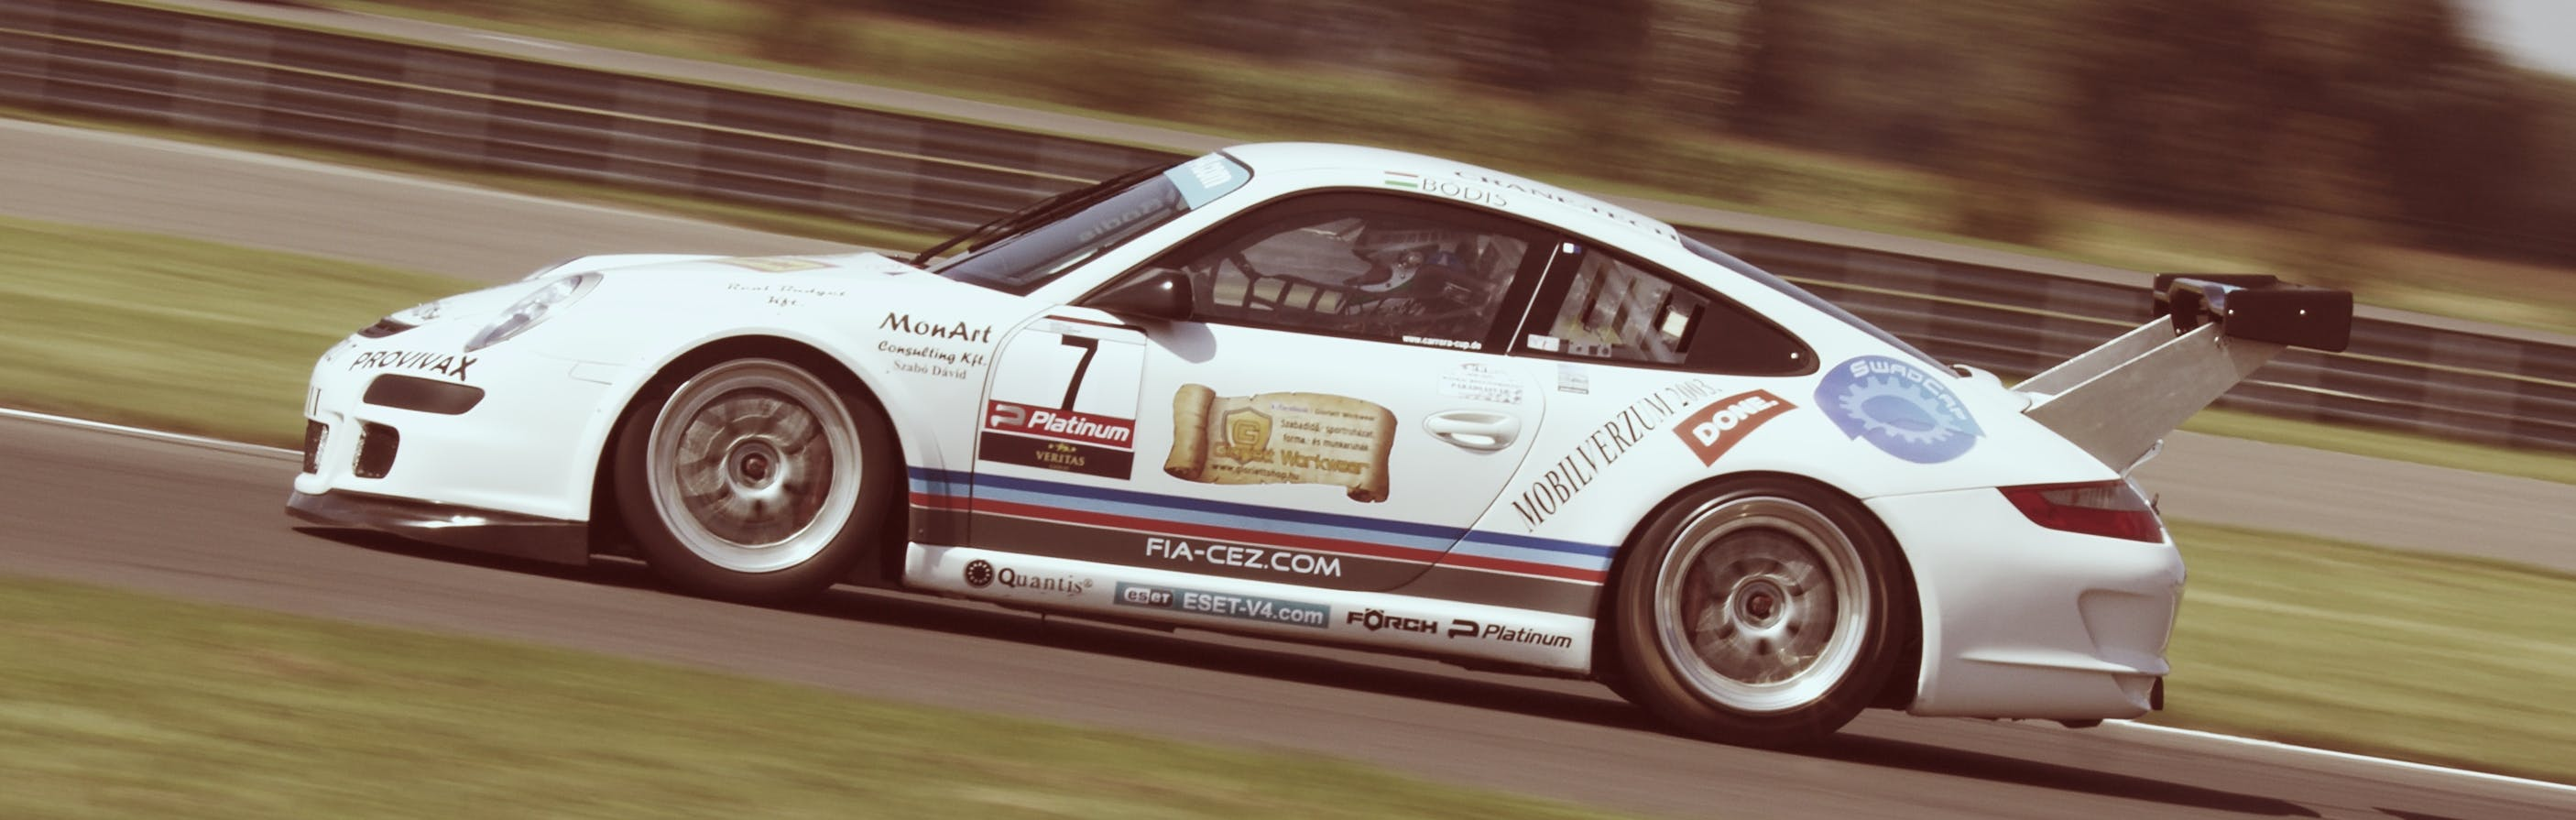 Free stock photo of motor sport, porsche, race, slovakia